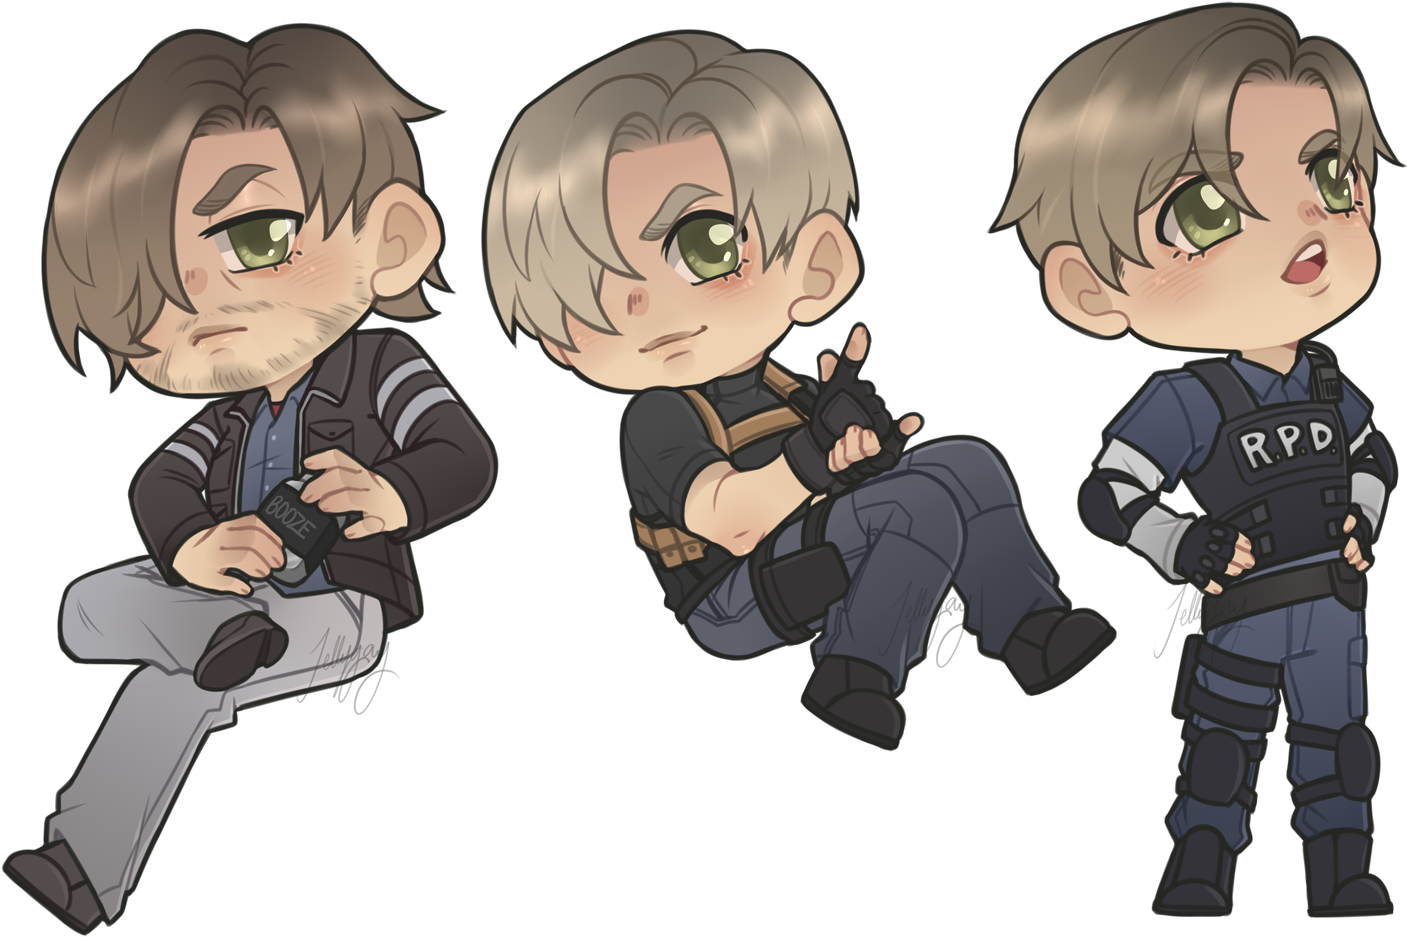 Download Leon Chibis Resident Evil 2 Remake Fanart Png Image With No Background Pngkey Com